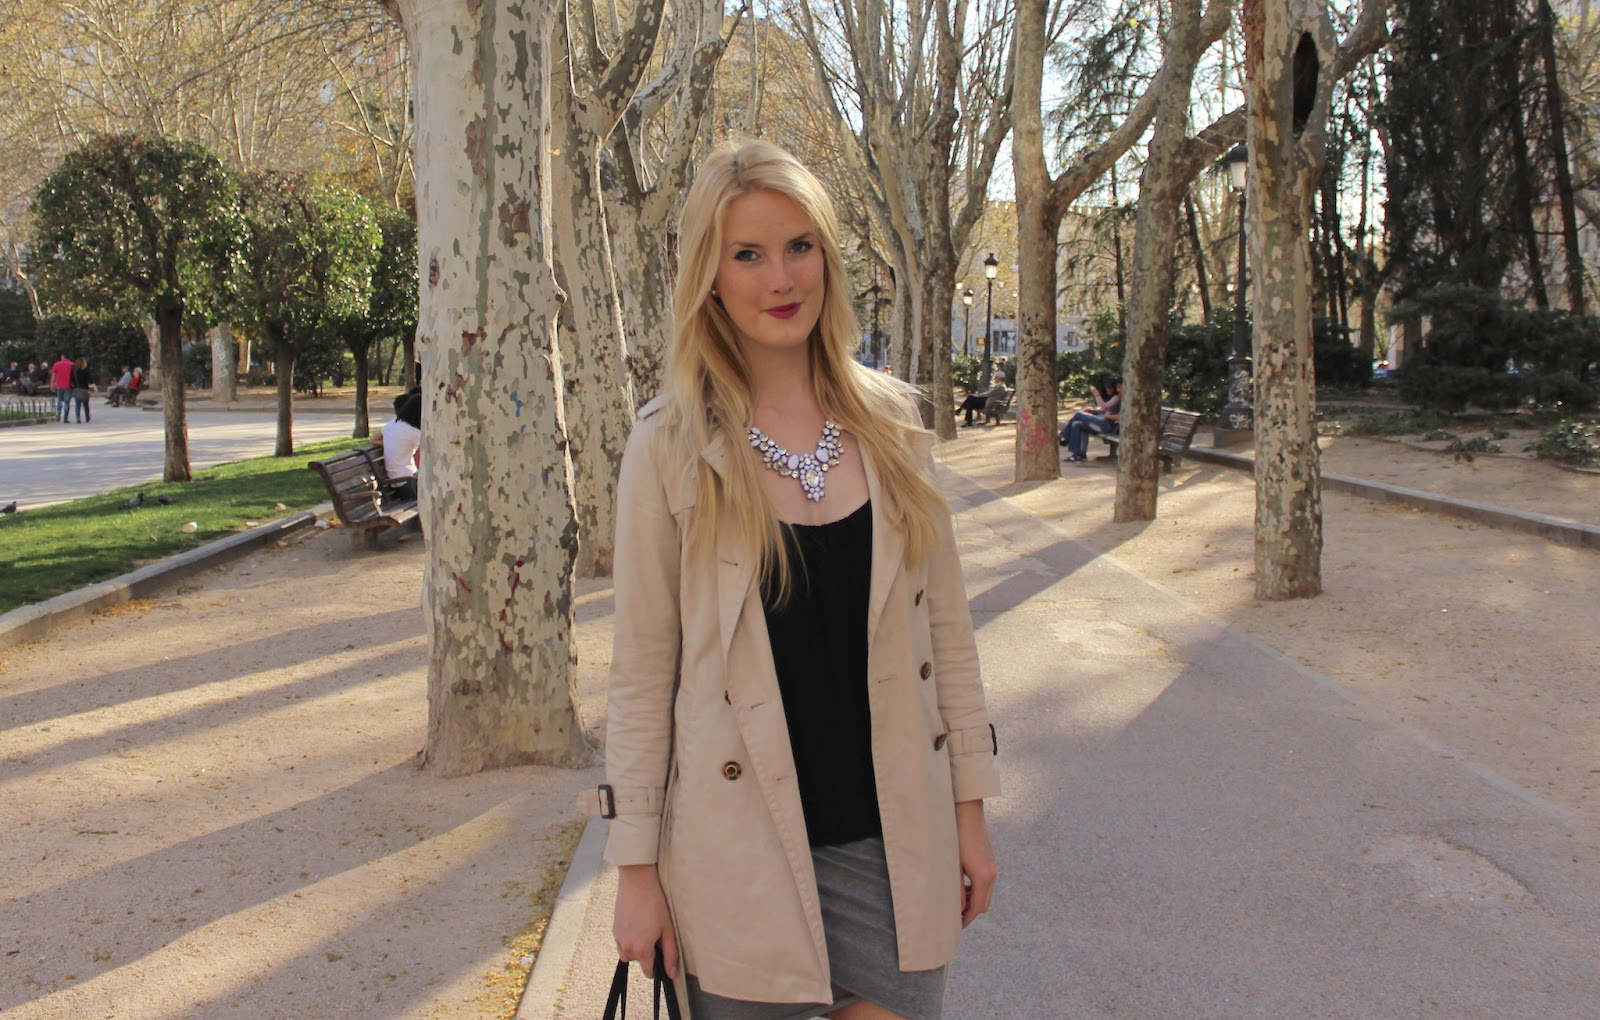 TheBlondeLion Look Trench Statement Necklace Skirt Michael Kors Madrid Plaza Espana http://www.theblondelion.com/2015/04/look-statement-necklace-madrid-plaza-espana.html